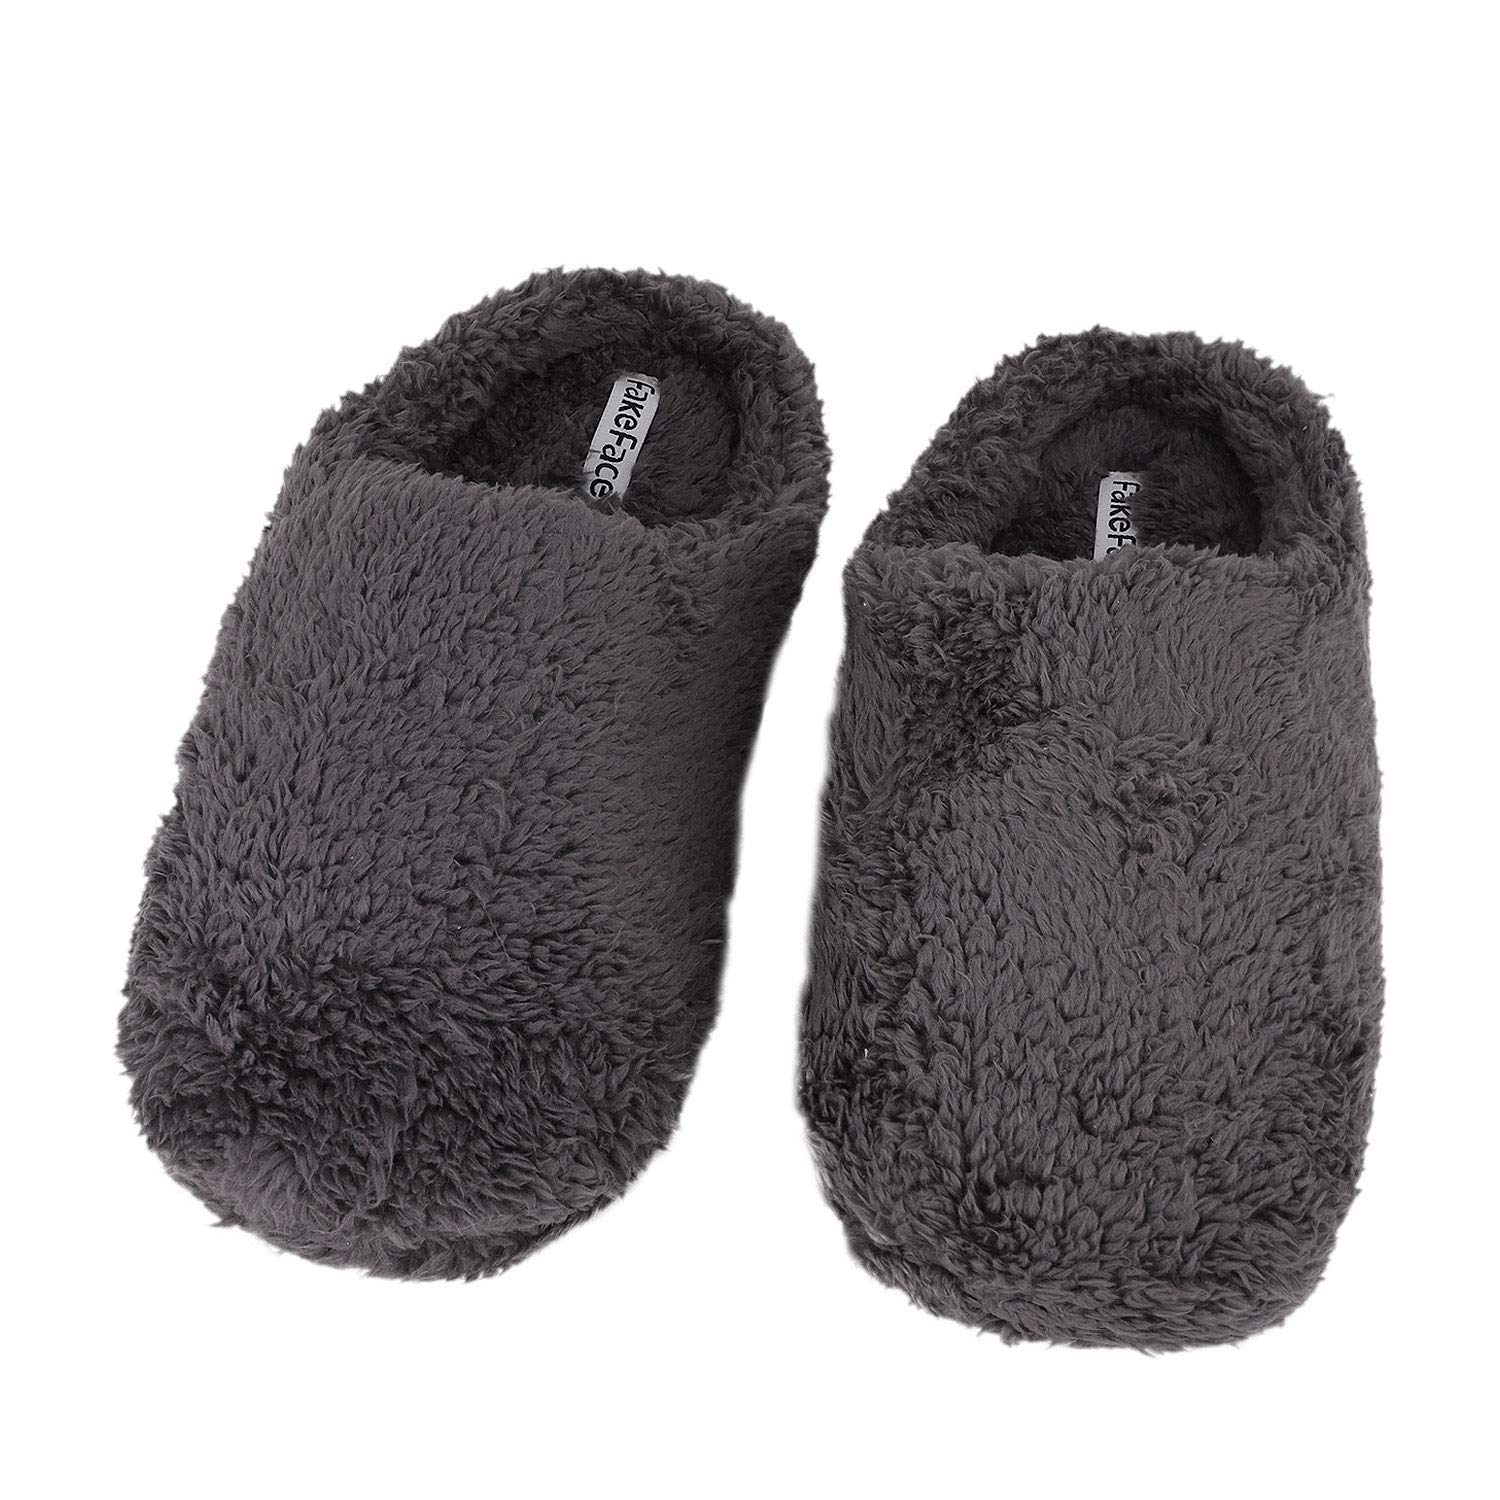 452cf63a5669f3 Get Quotations · Greenery-GRE Memory Foam Indoor Slippers for Women Men  Soft Warm Fleece Non-Slip